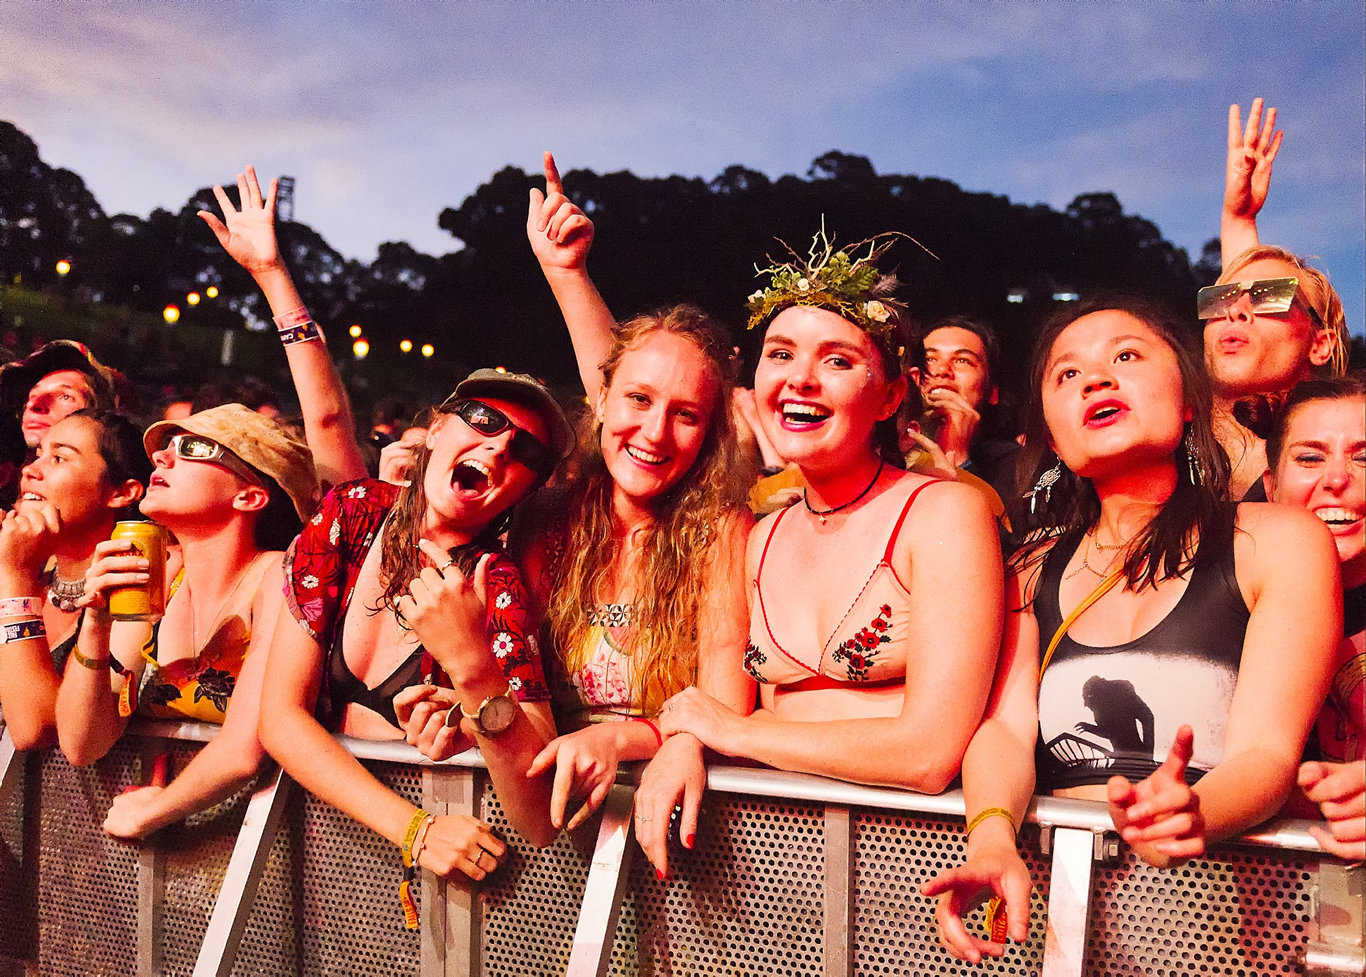 HEAD LINERS: Non traditional head dresses should be fine to wear, like the one in this image from last year's Falls Byron Bay.